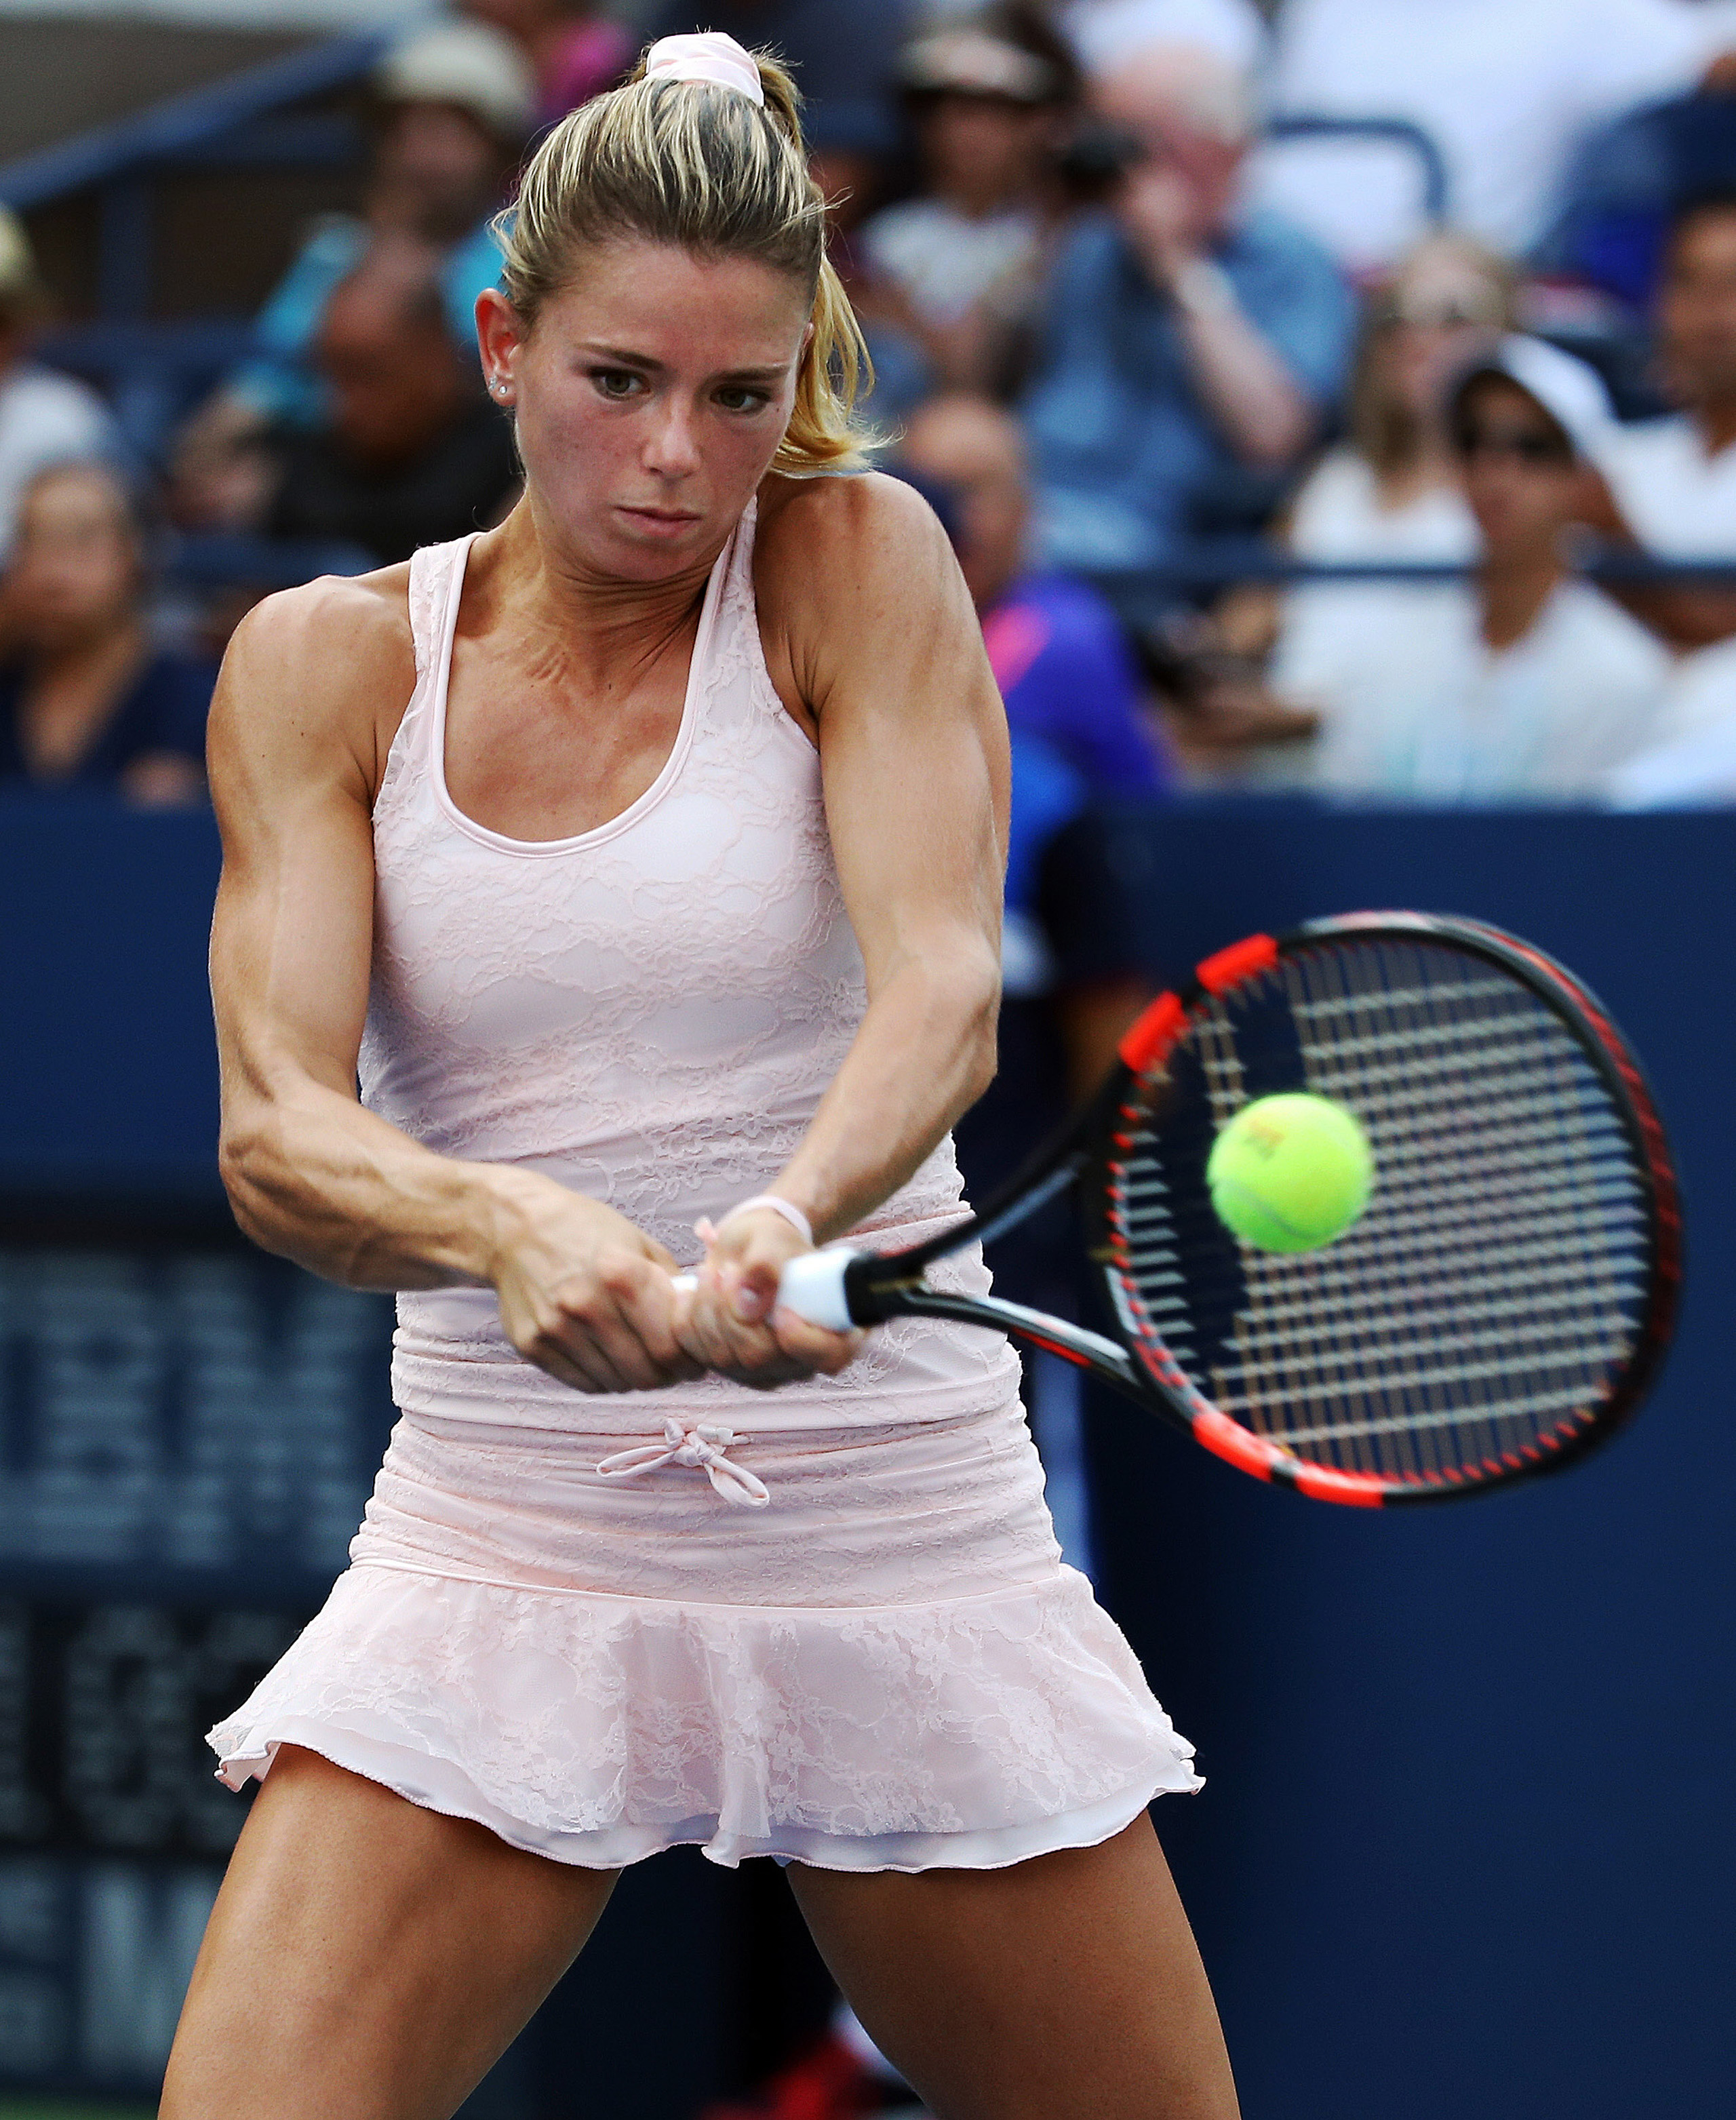 Camila Giorgi, of Italy, returns a shot to Sabine Lisicki, of Germany, during the second round of the U.S. Open in New York on Sept. 3, 2015,